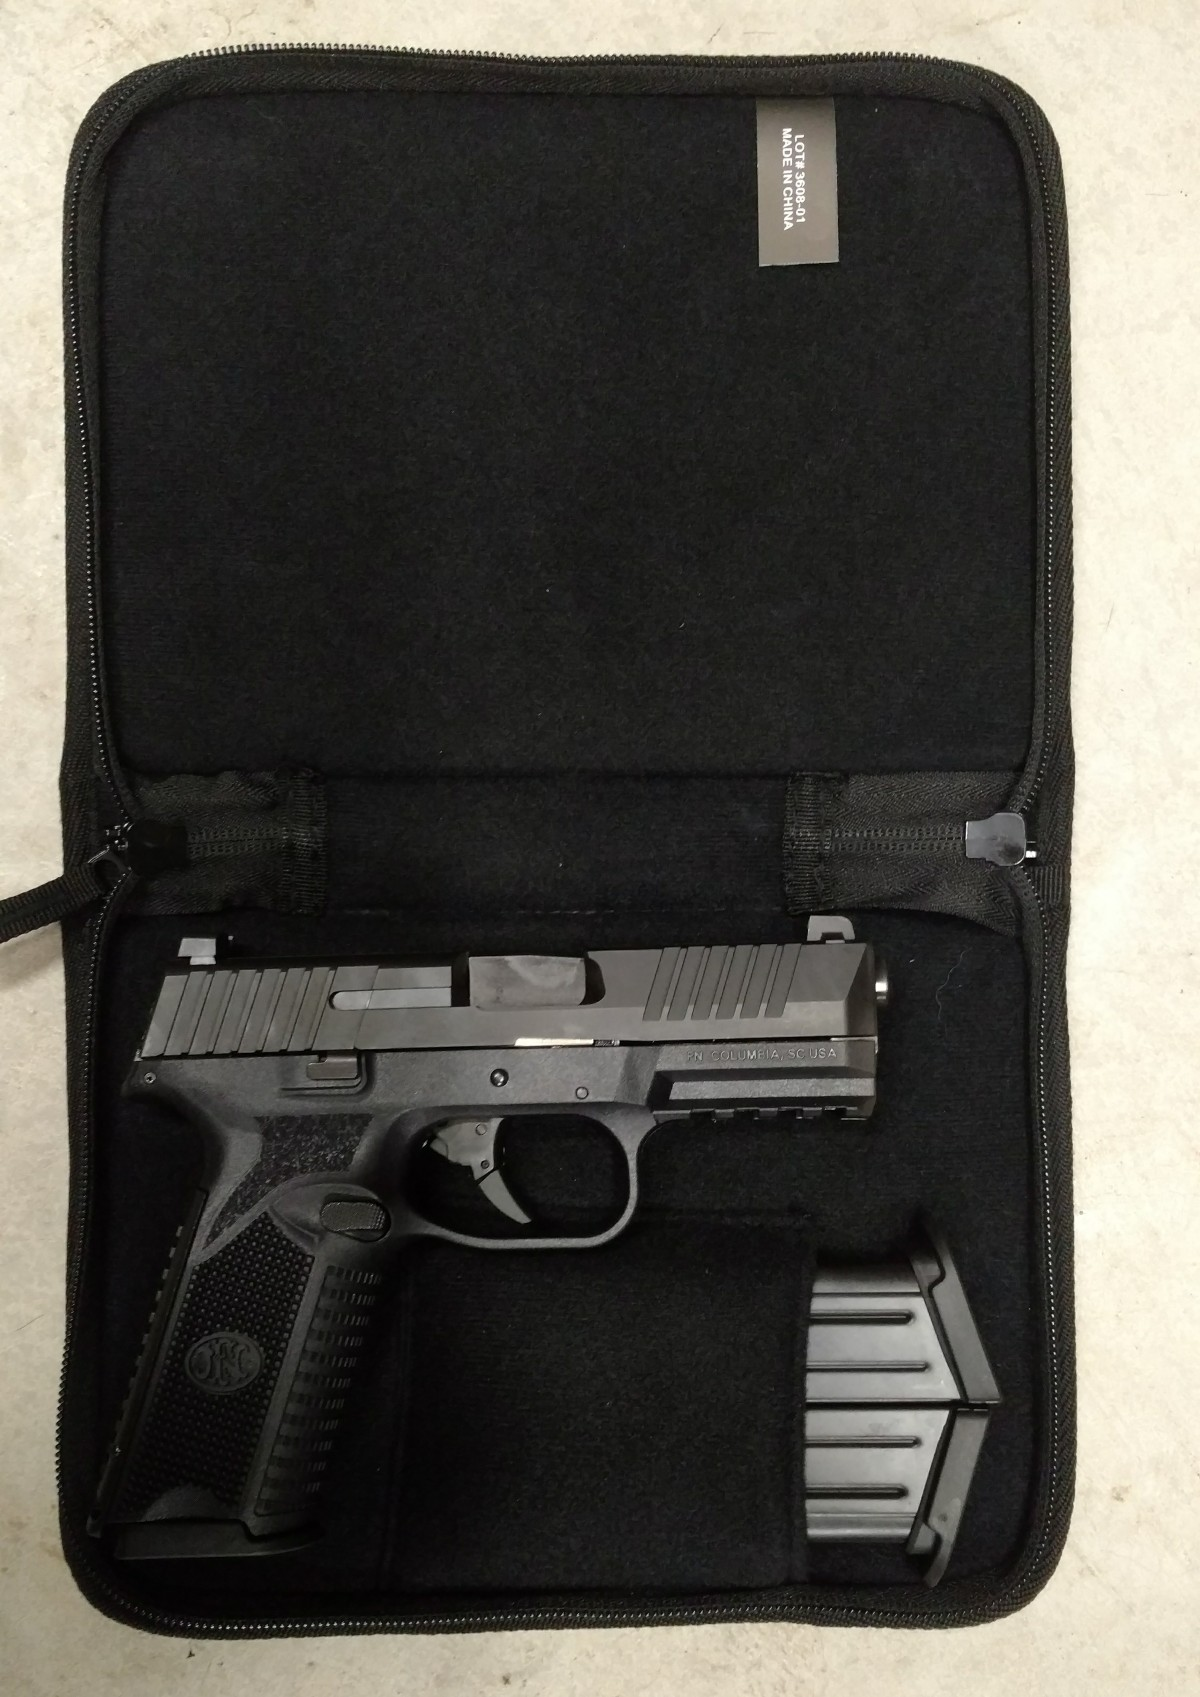 First Impressions: The FN 509